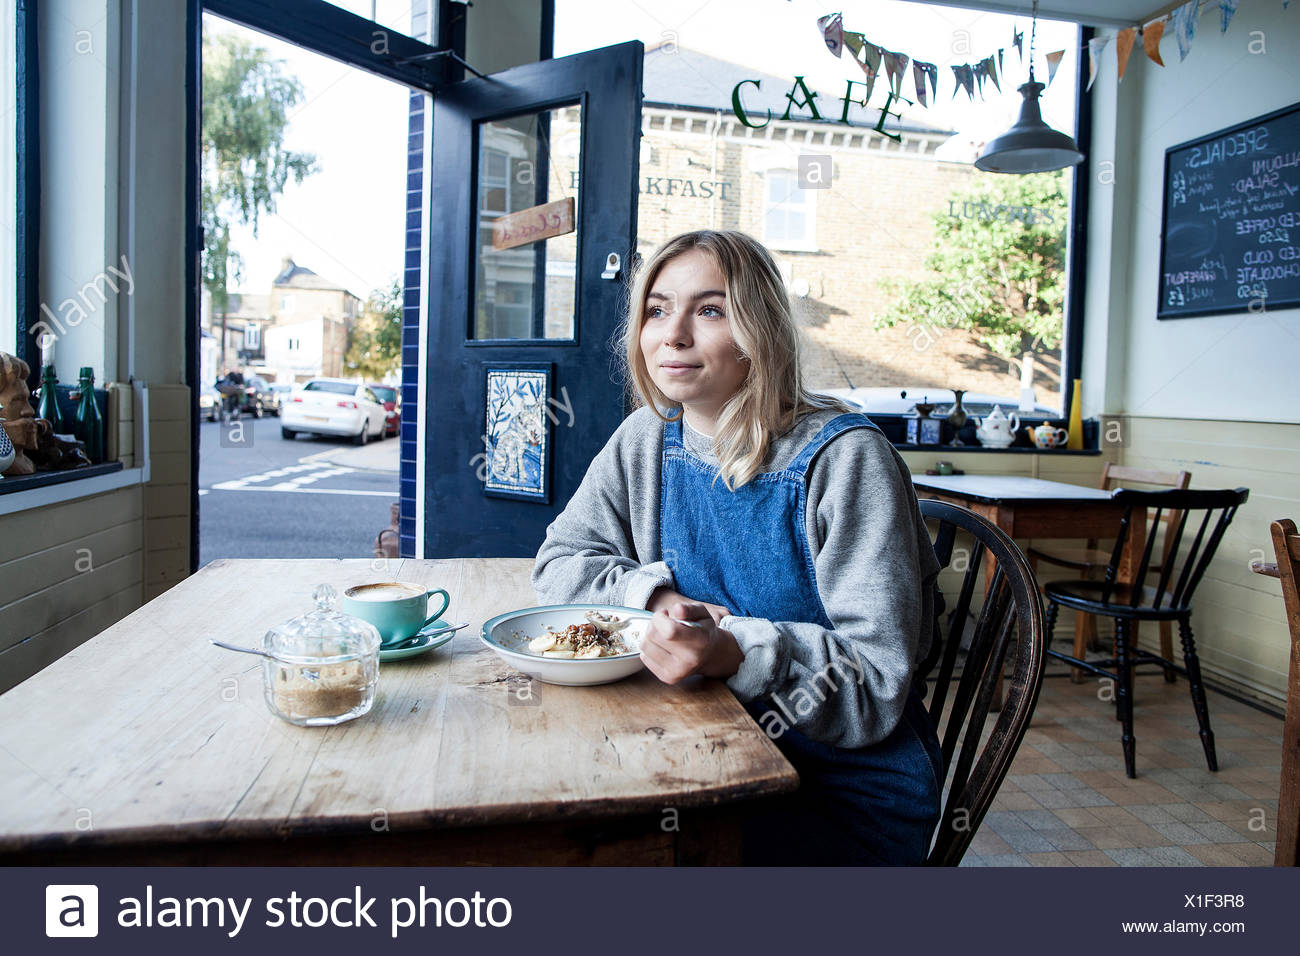 Young woman in cafe, eating muesli - Stock Image